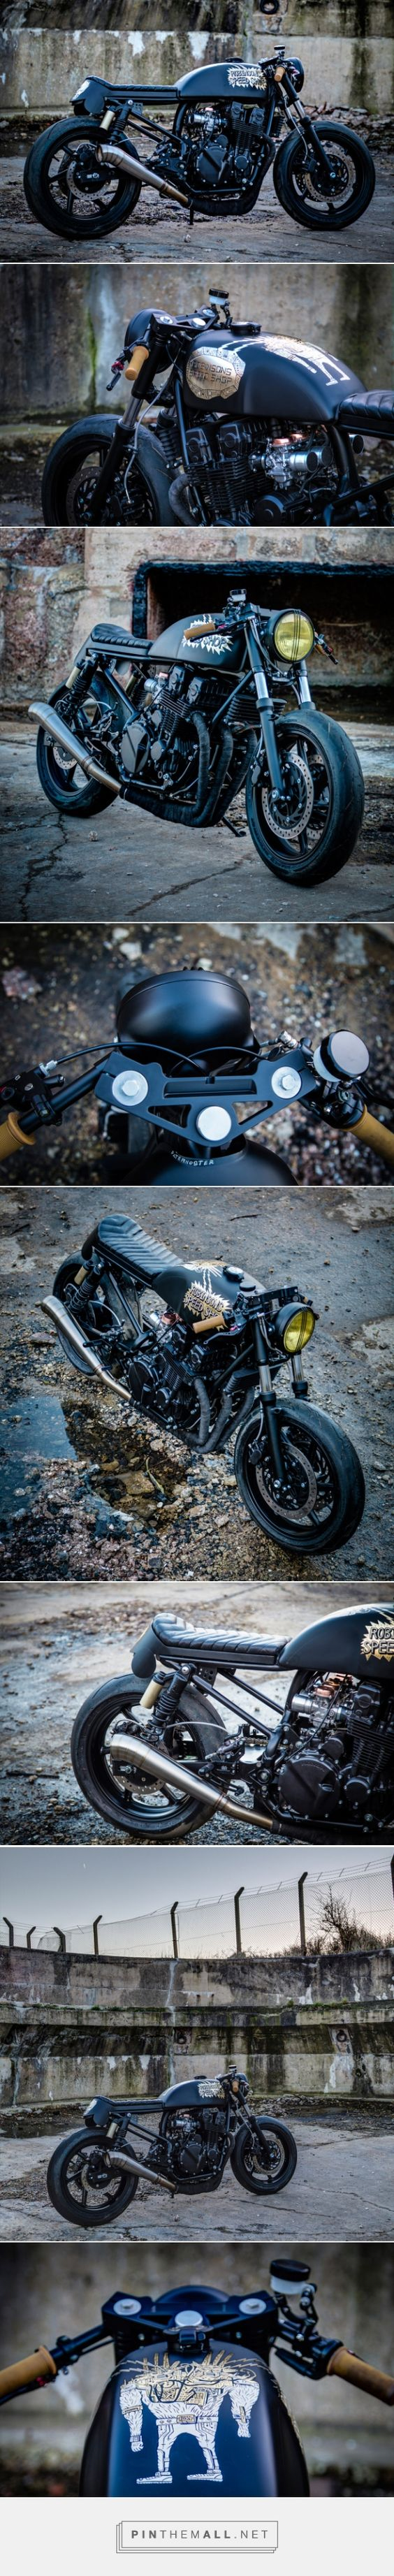 Honda CB 750 custom painted by Maxwell Paternoster, AKA Corpses from Hell. Click to read the story